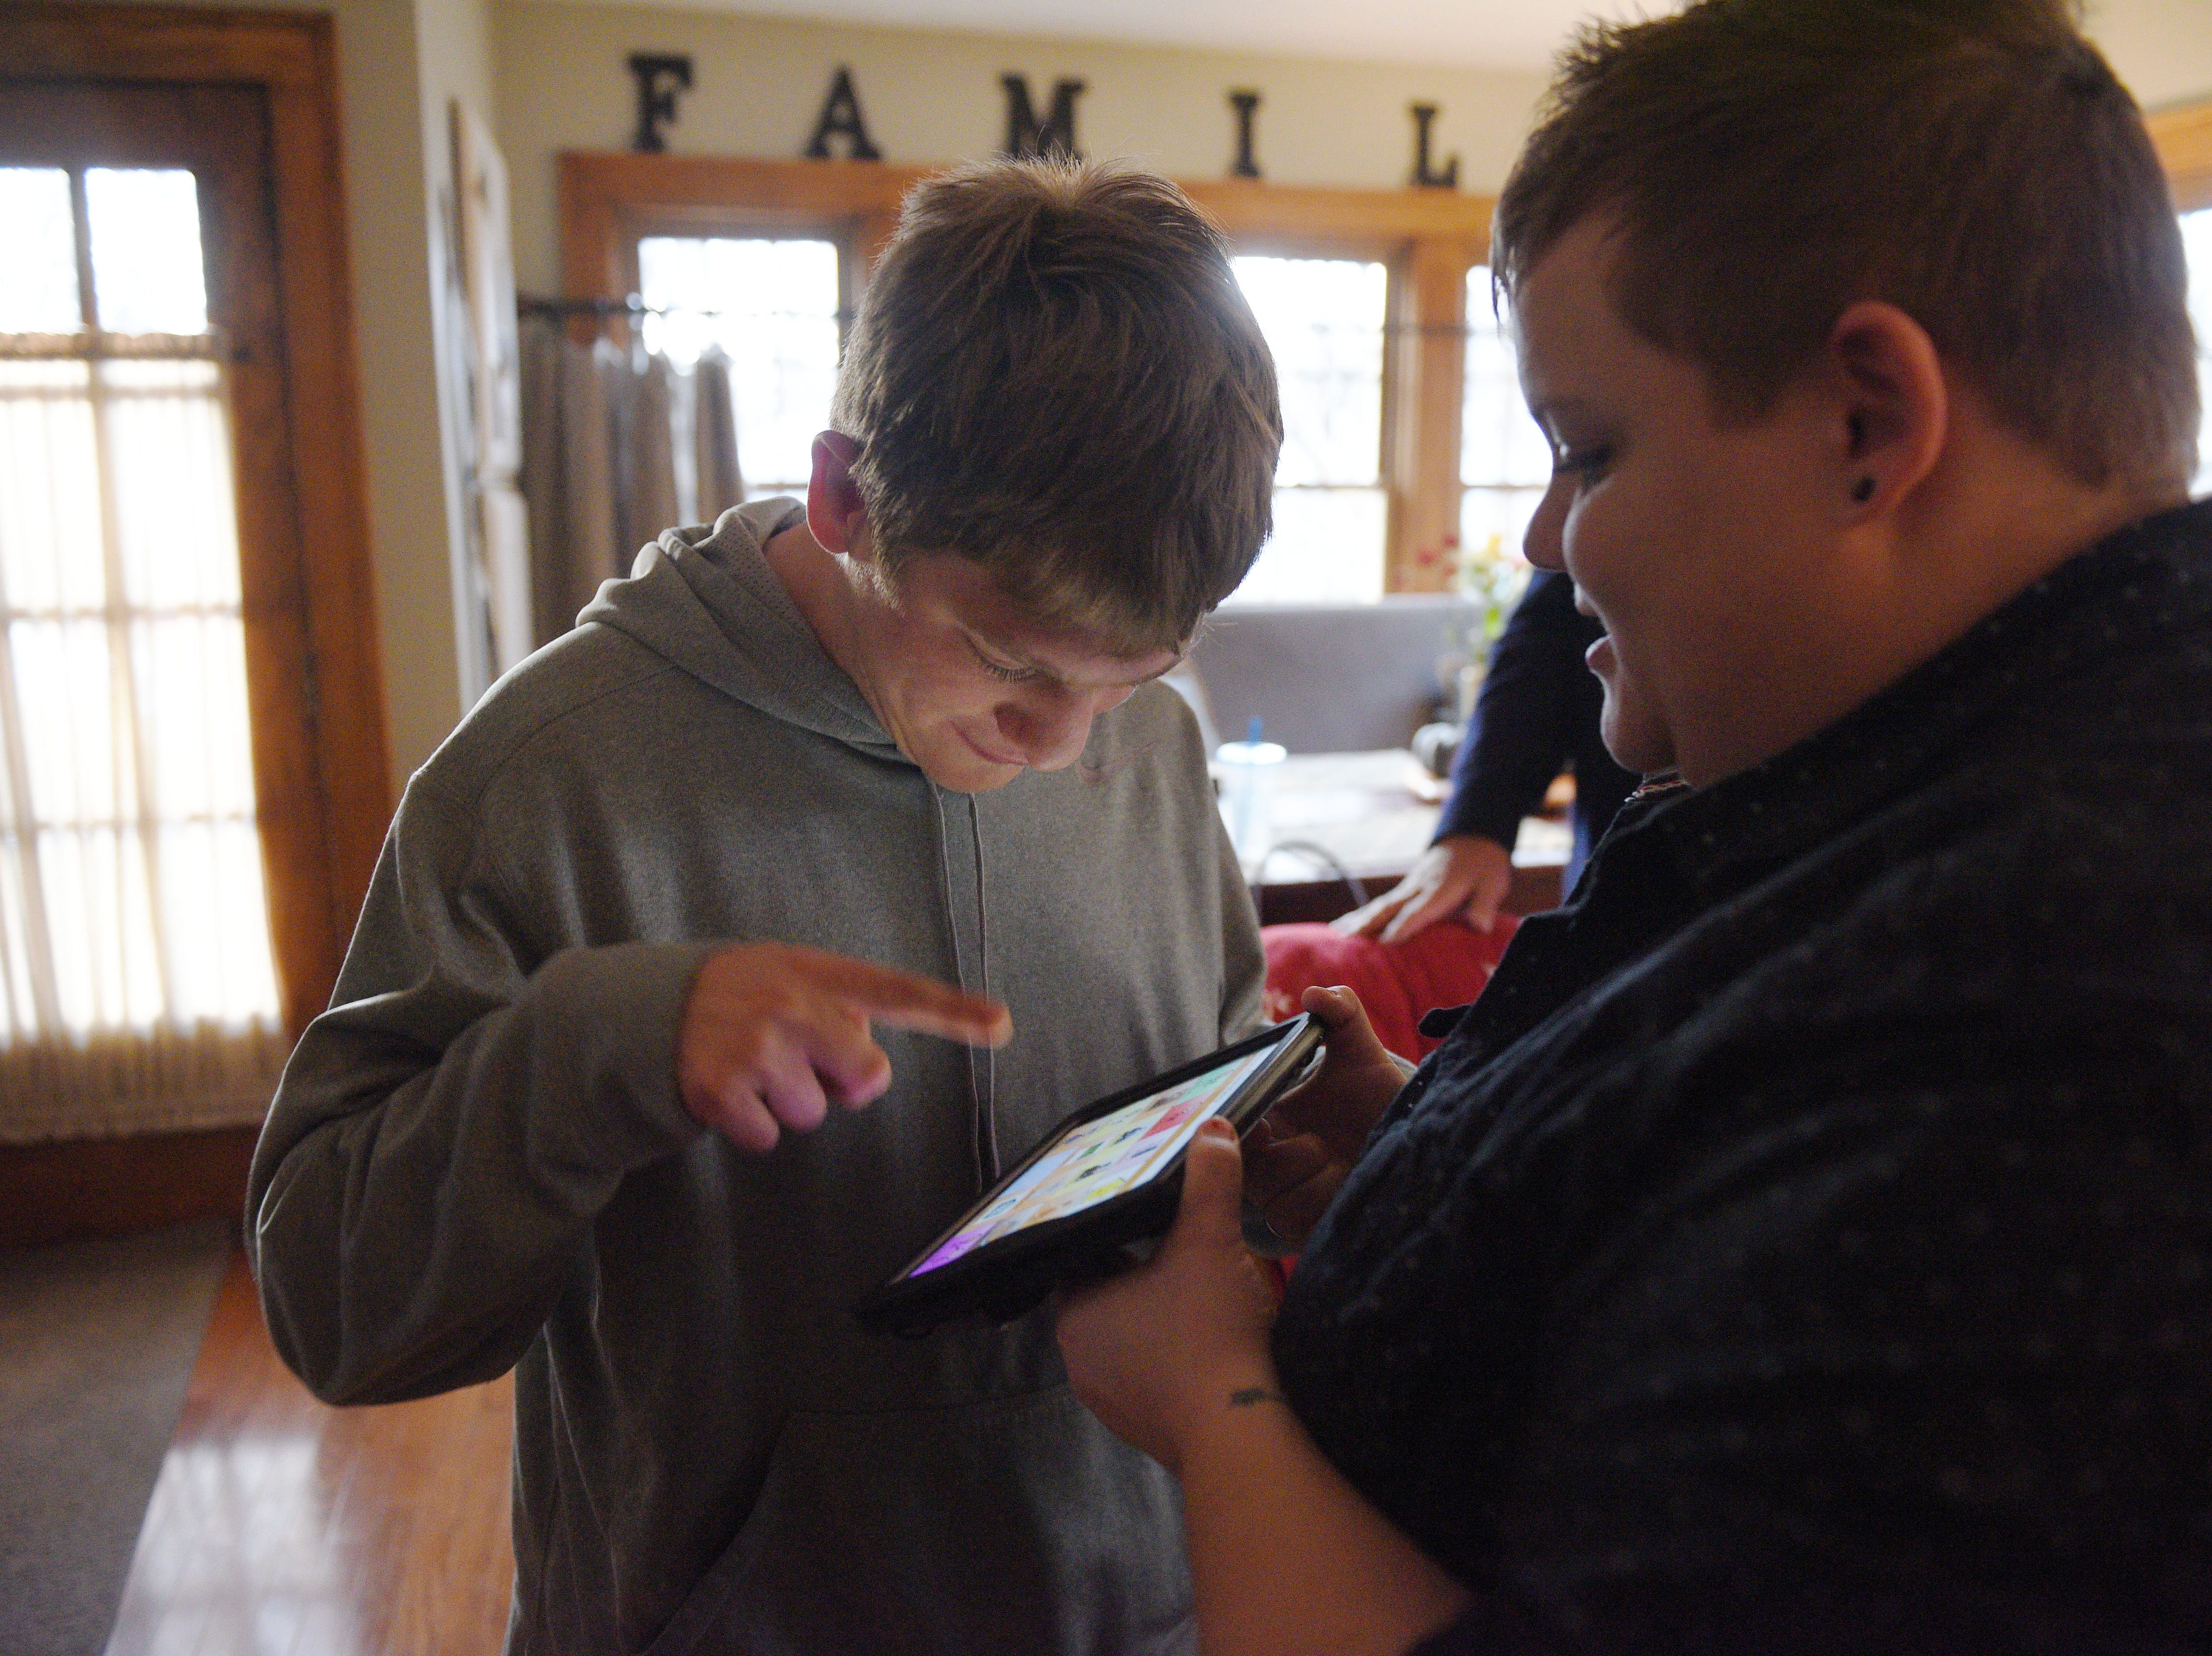 Ben Graff uses a Wego speech-generating device with the help of Shared Living Provider Kayla Harris at his new house Wednesday, Nov. 7, in Sioux Falls. Graff can use the communication device to say what he wants to eat, how he is feeling and introduce himself.